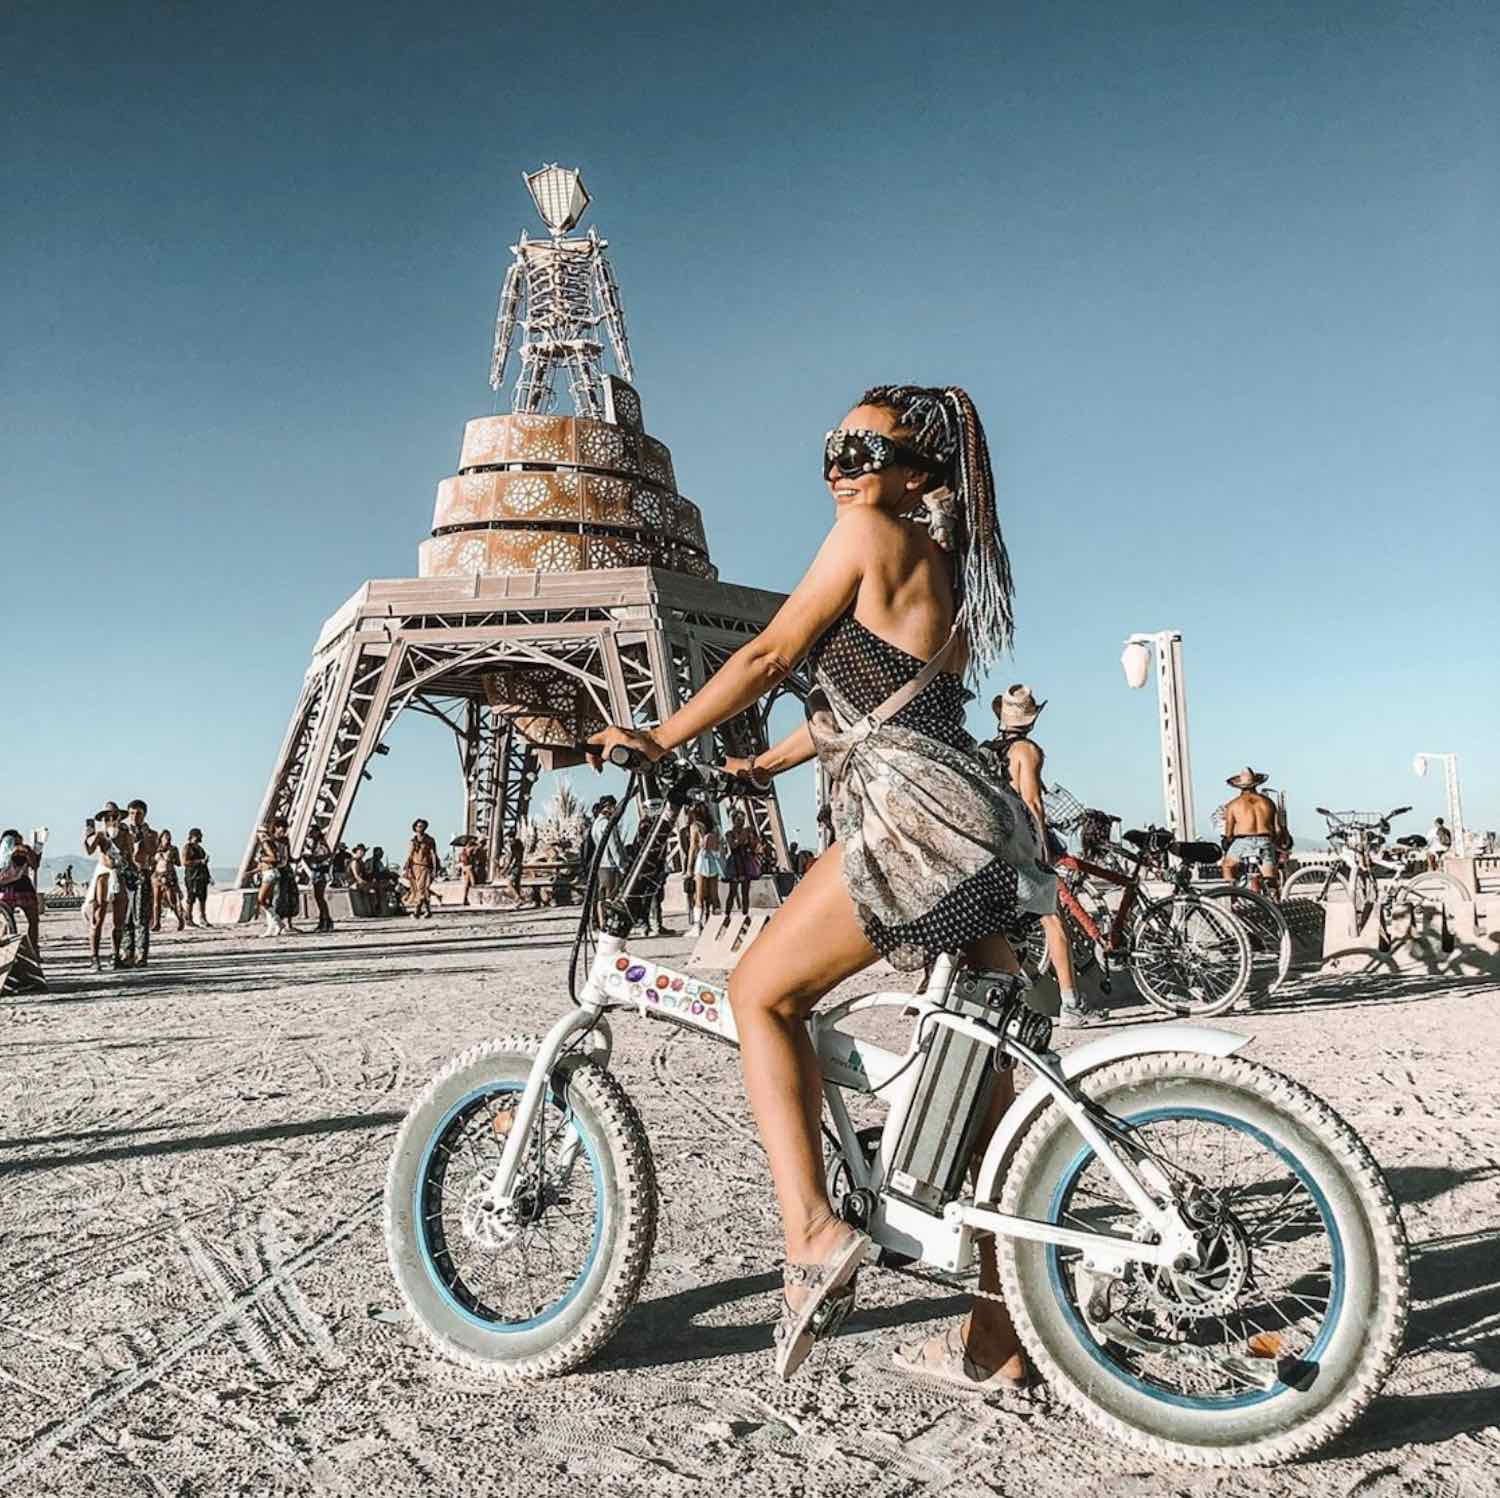 Burning Man 2019 - Photo via IG by @me_lana_